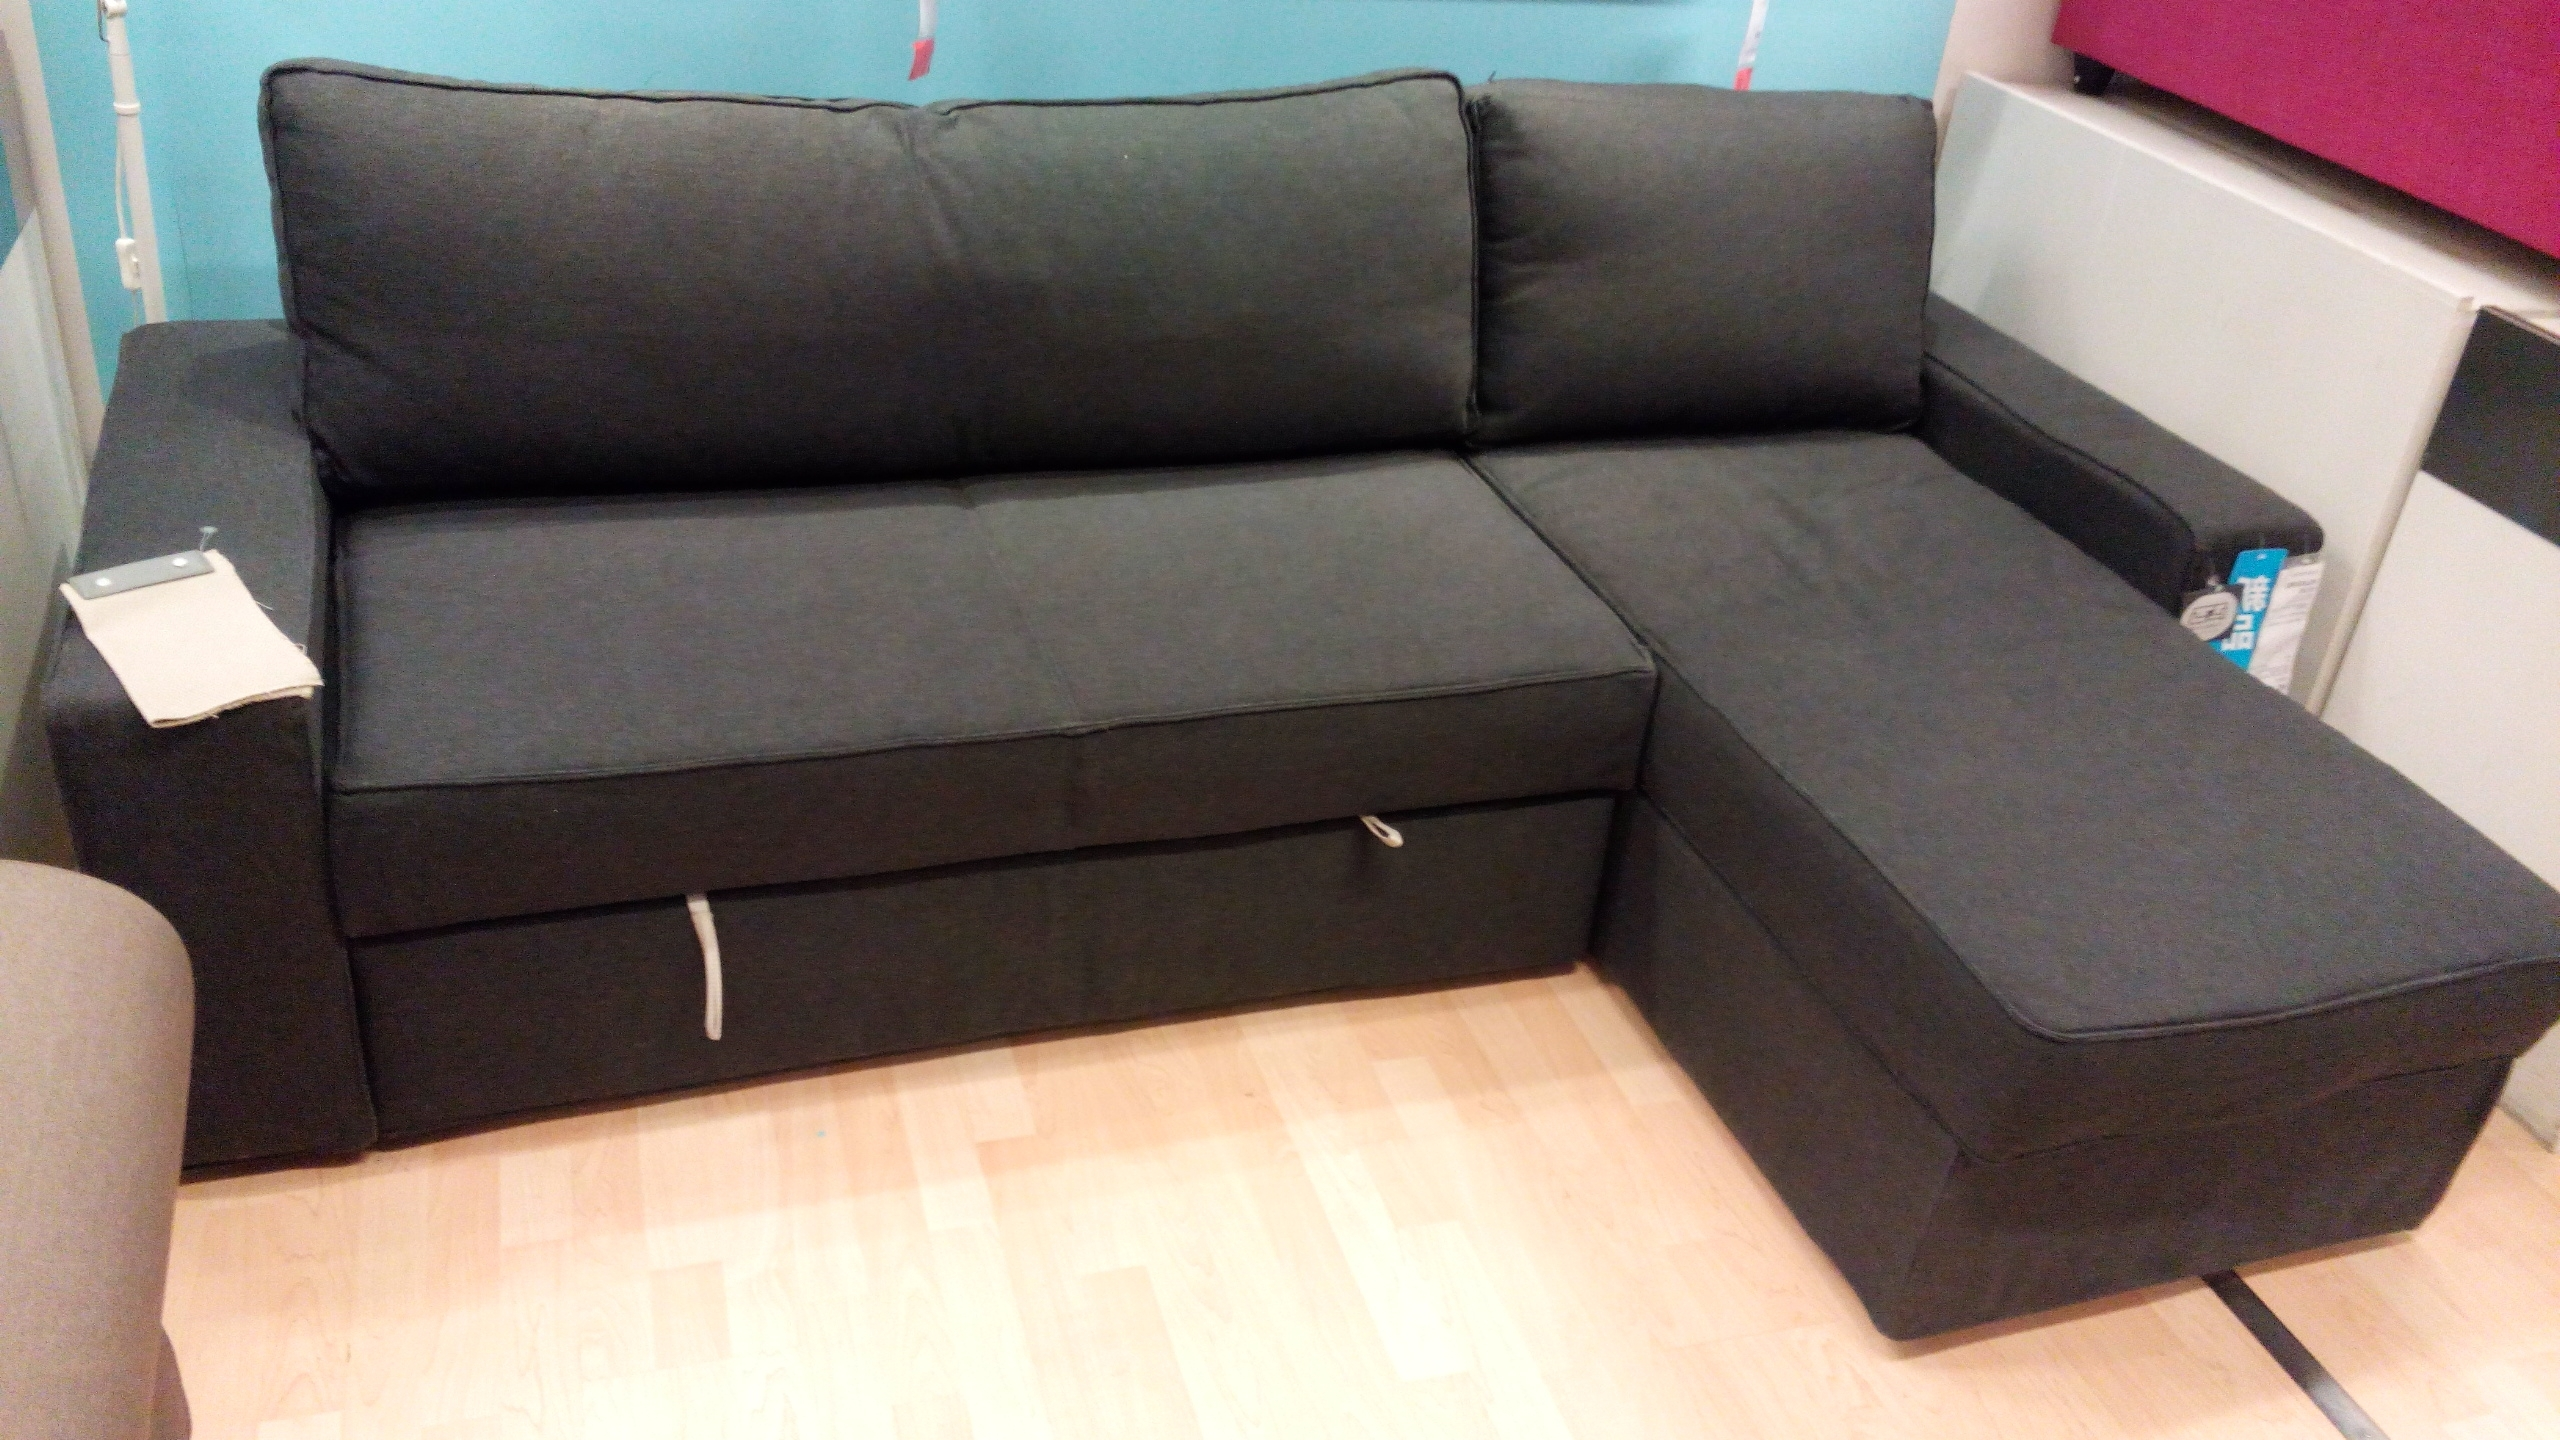 Ikea Vilasund And Backabro Review – Return Of The Sofa Bed Clones! With Regard To Favorite Ikea Sofa Beds With Chaise (View 9 of 15)